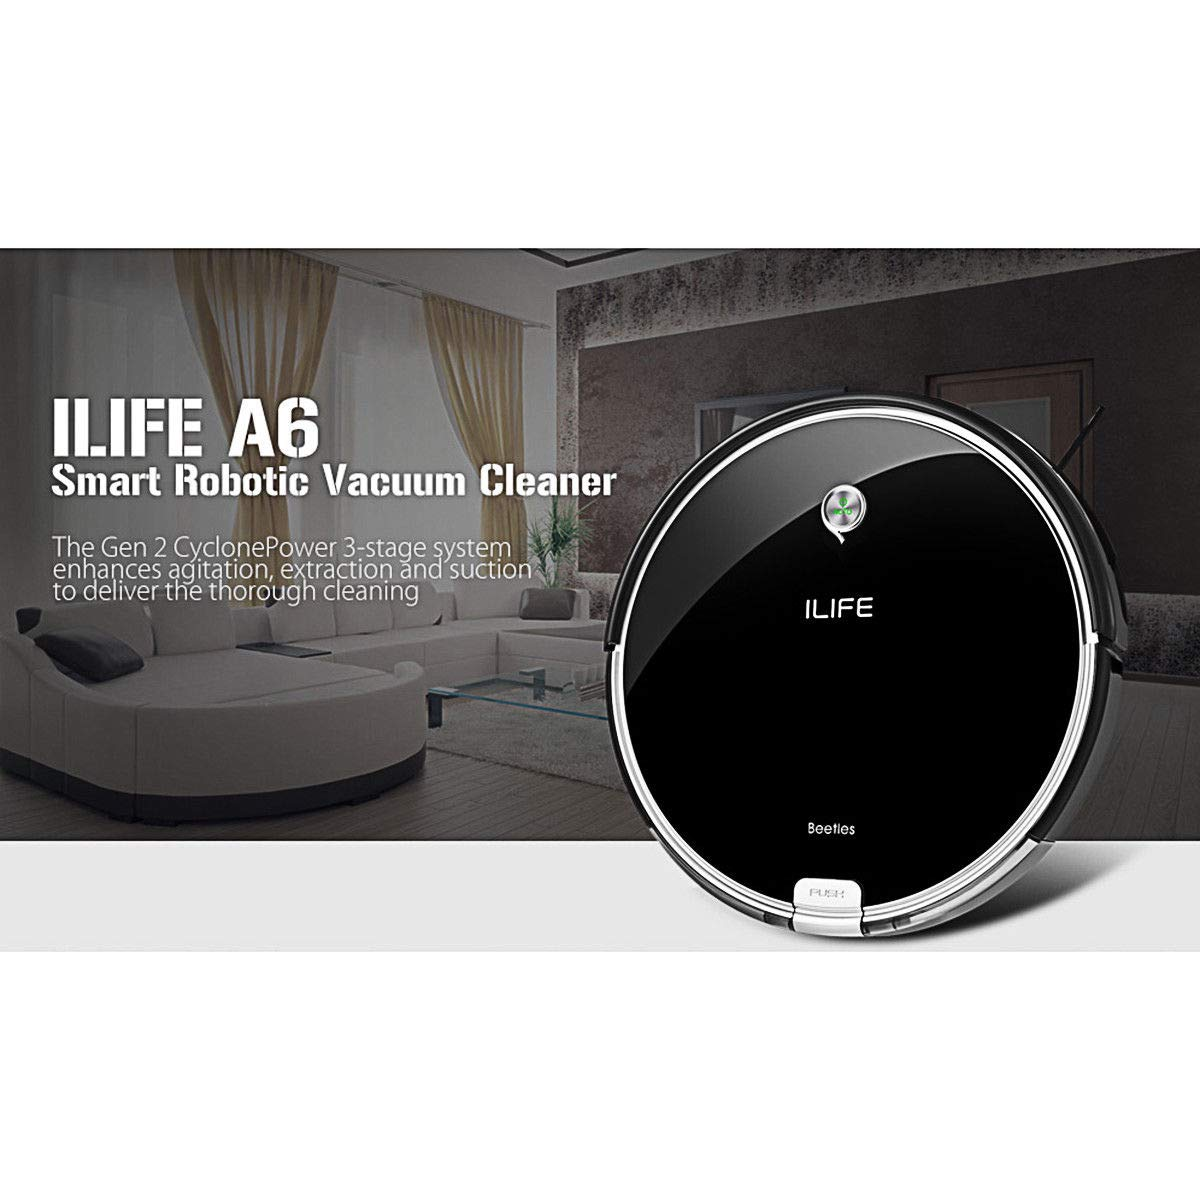 I LIFE A6 Intelligent Vacuum Cleaner Automatic Cleaner 1000pa Cleaning: Amazon.es: Hogar